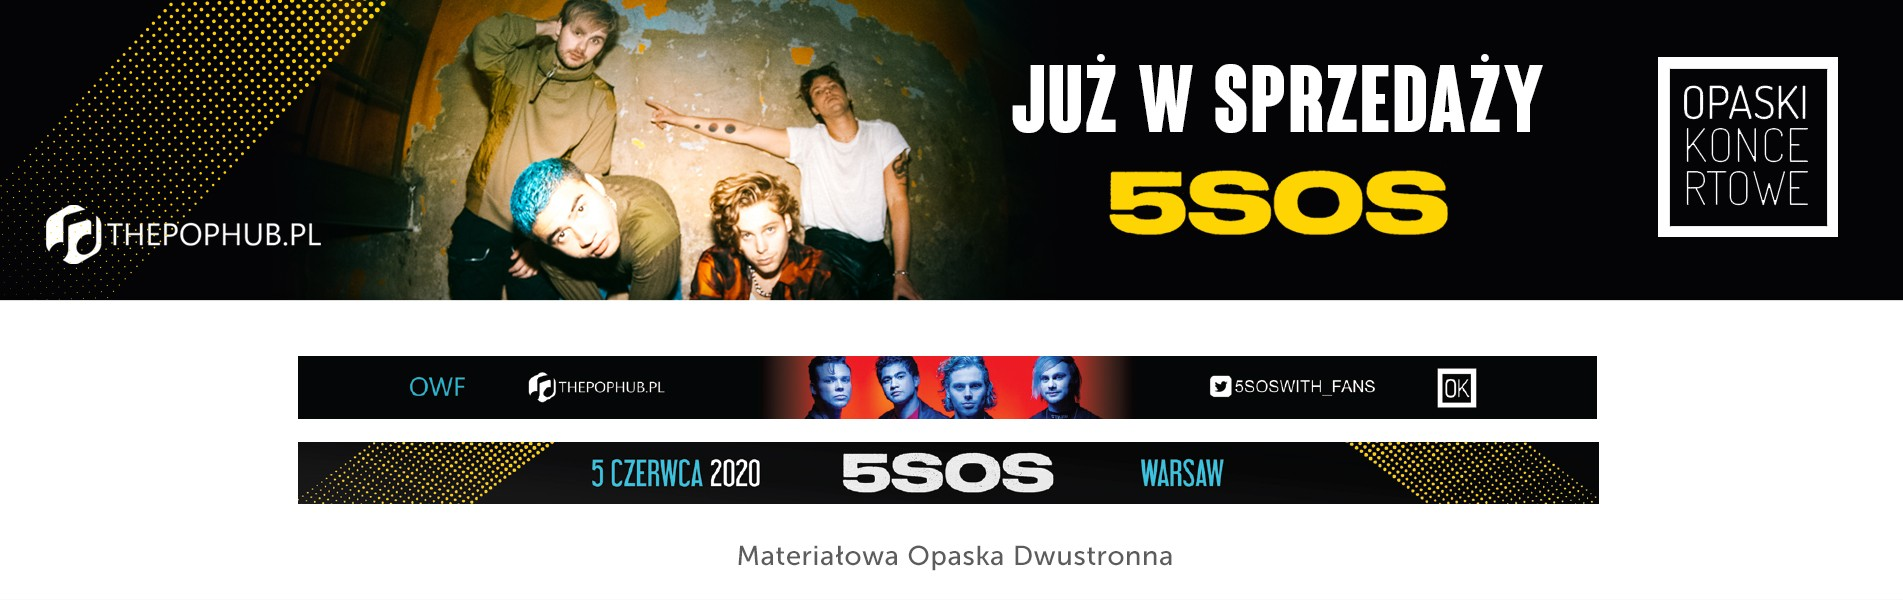 5SOS - Orange Warsaw Festival 2020